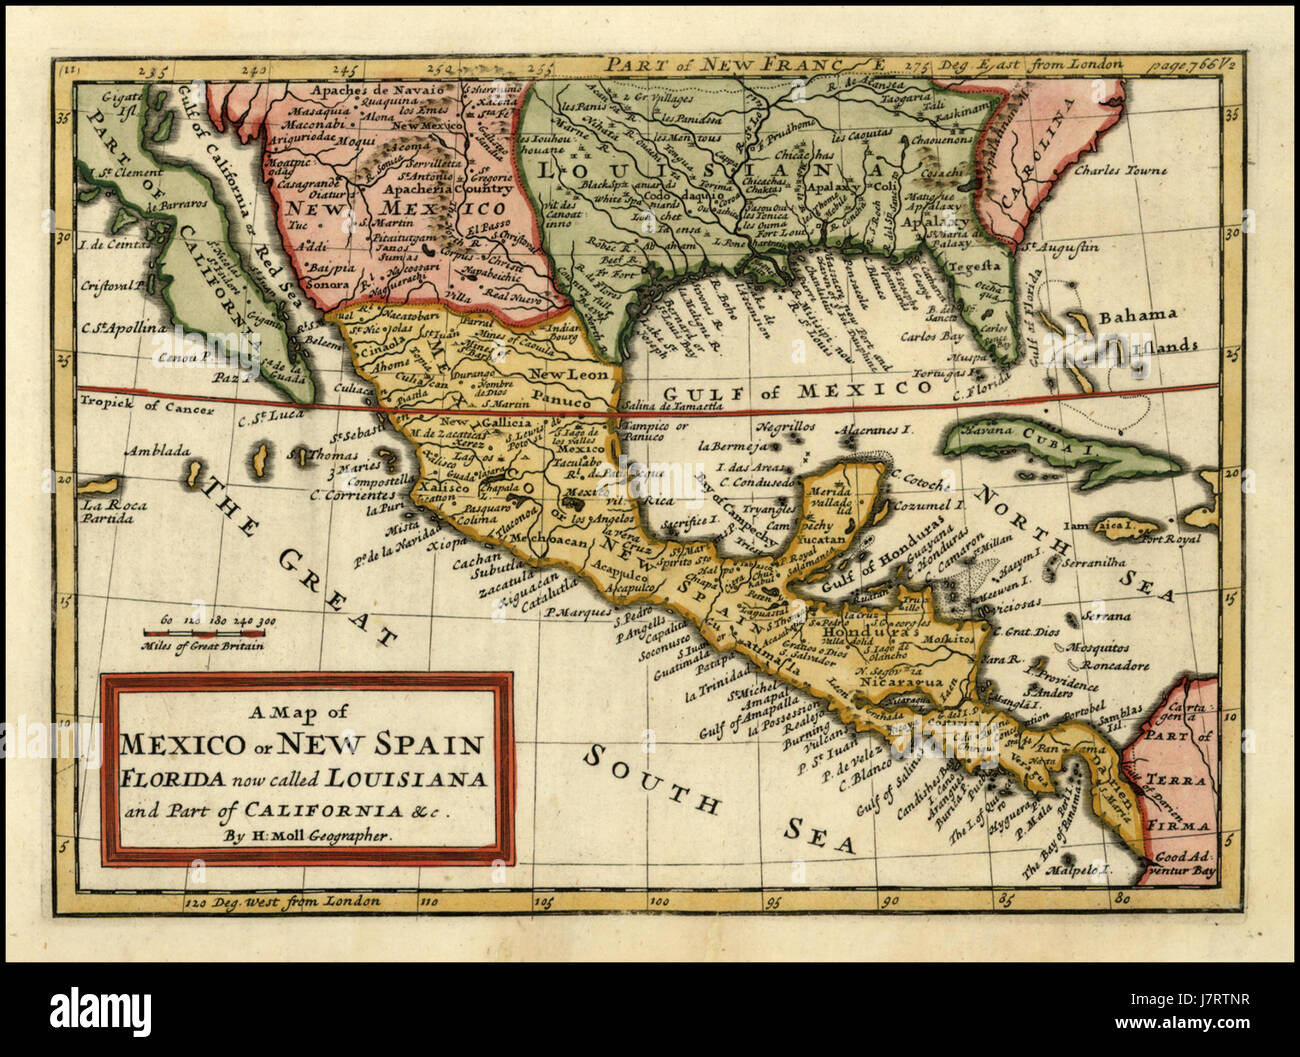 Mexico Florida Map.A Map Of Mexico Or New Spain Florida Now Called Louisiana And Part